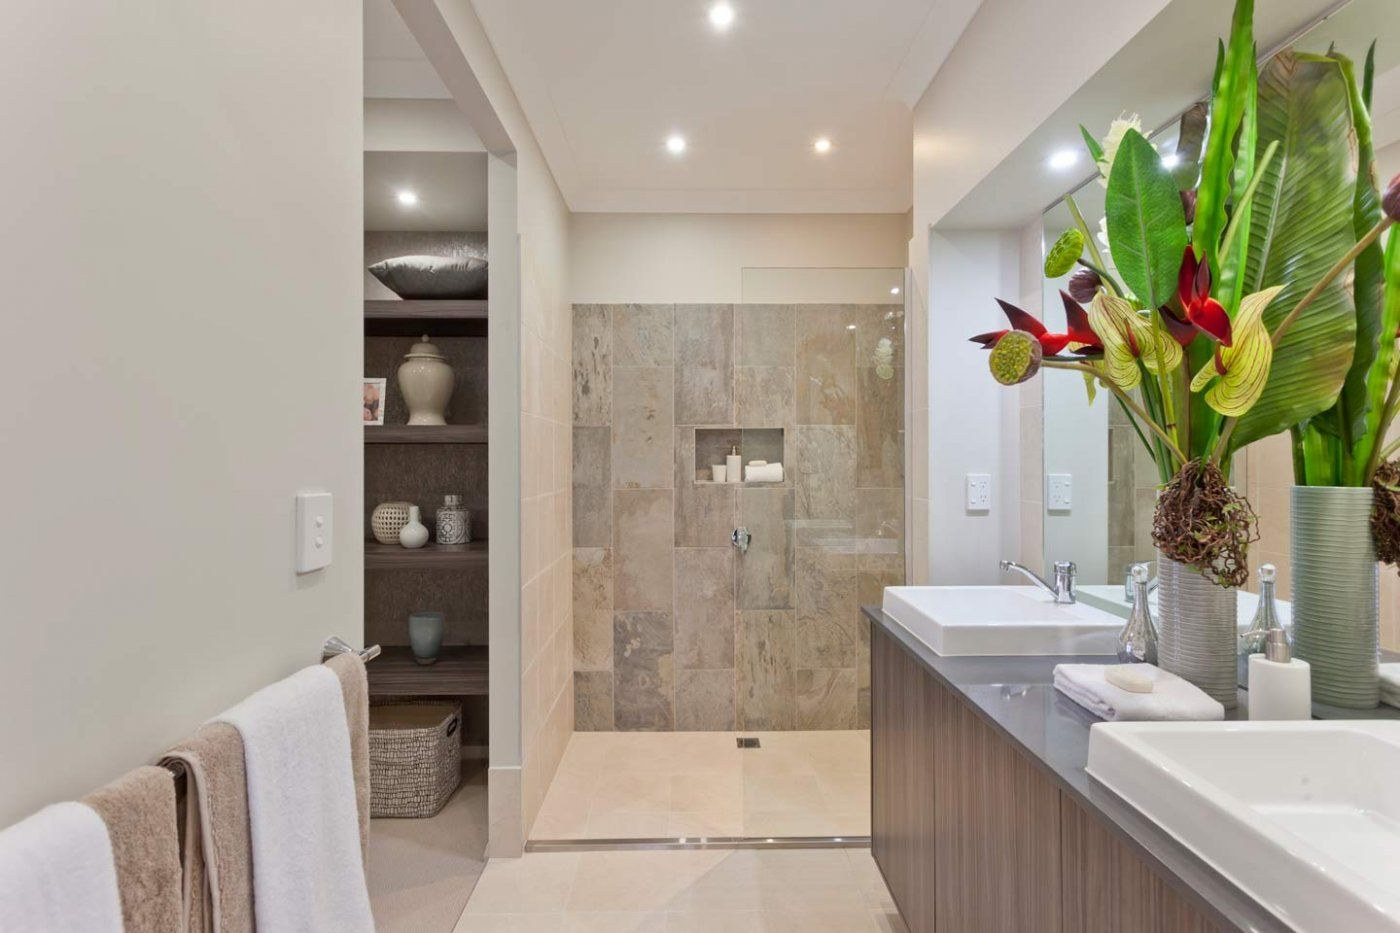 Love those tiles in the ensuite of the master bedroom in the love those tiles in the ensuite of the master bedroom in the sandalford design by mcdonald jones homes exclusive to canberra on display at 6 bonarba link dailygadgetfo Images